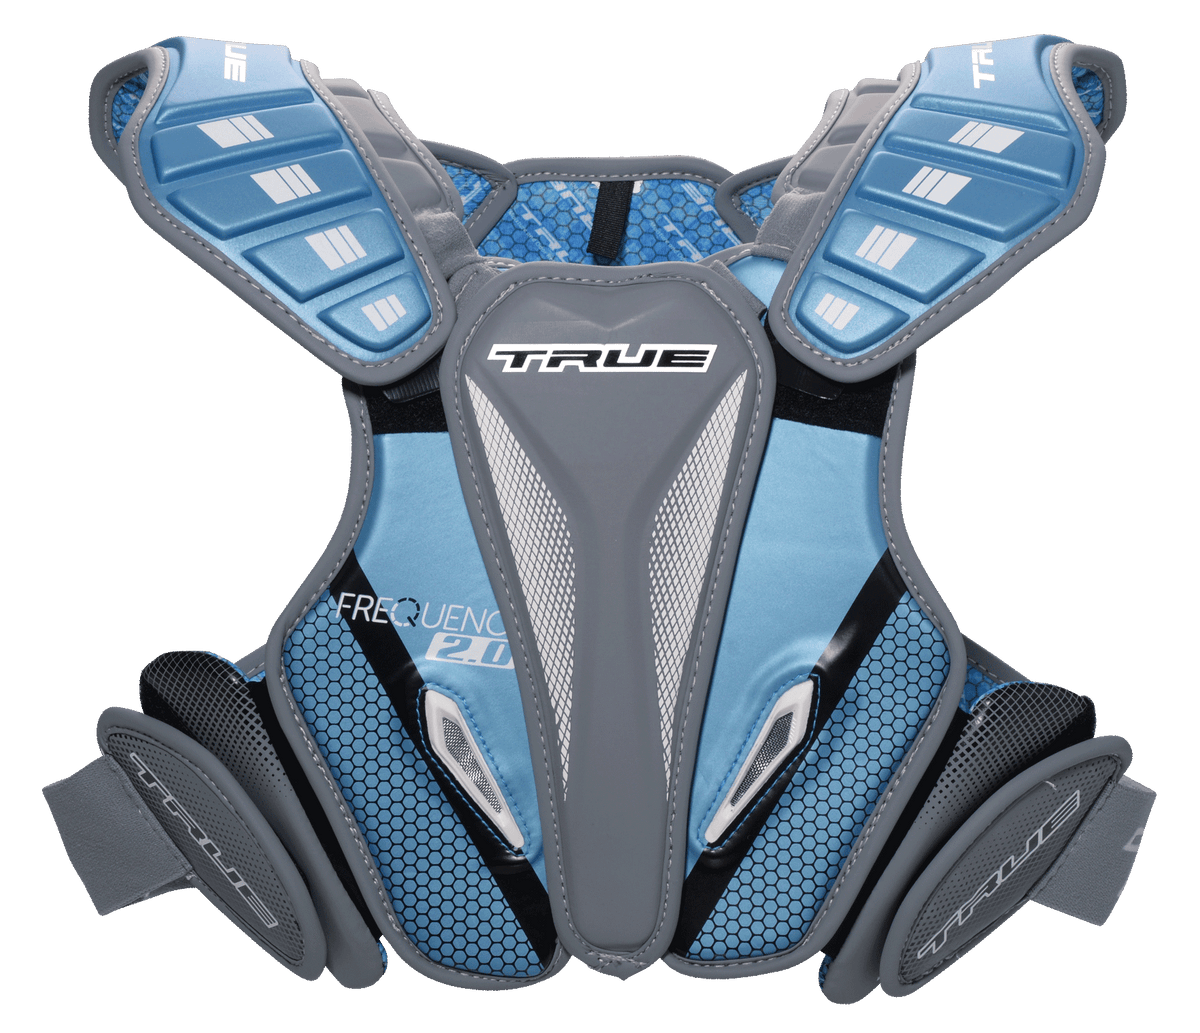 True Frequency 2.0 Hybrid Lacrosse Shoulder Pads